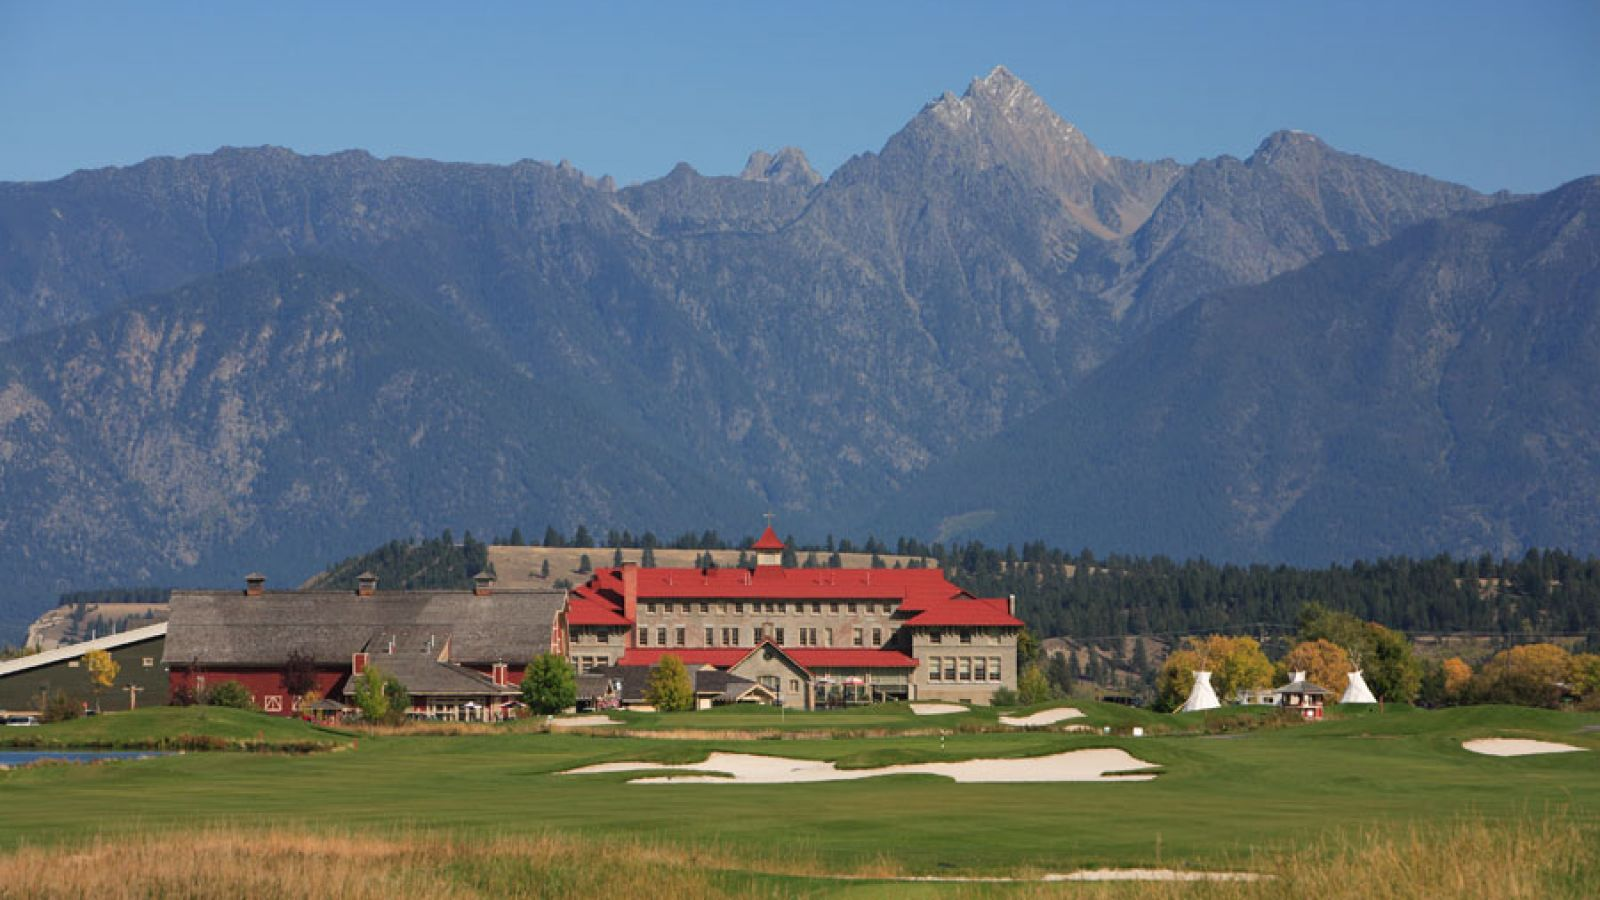 A beautiful property with casino, accommodation, restuarants and golf course.